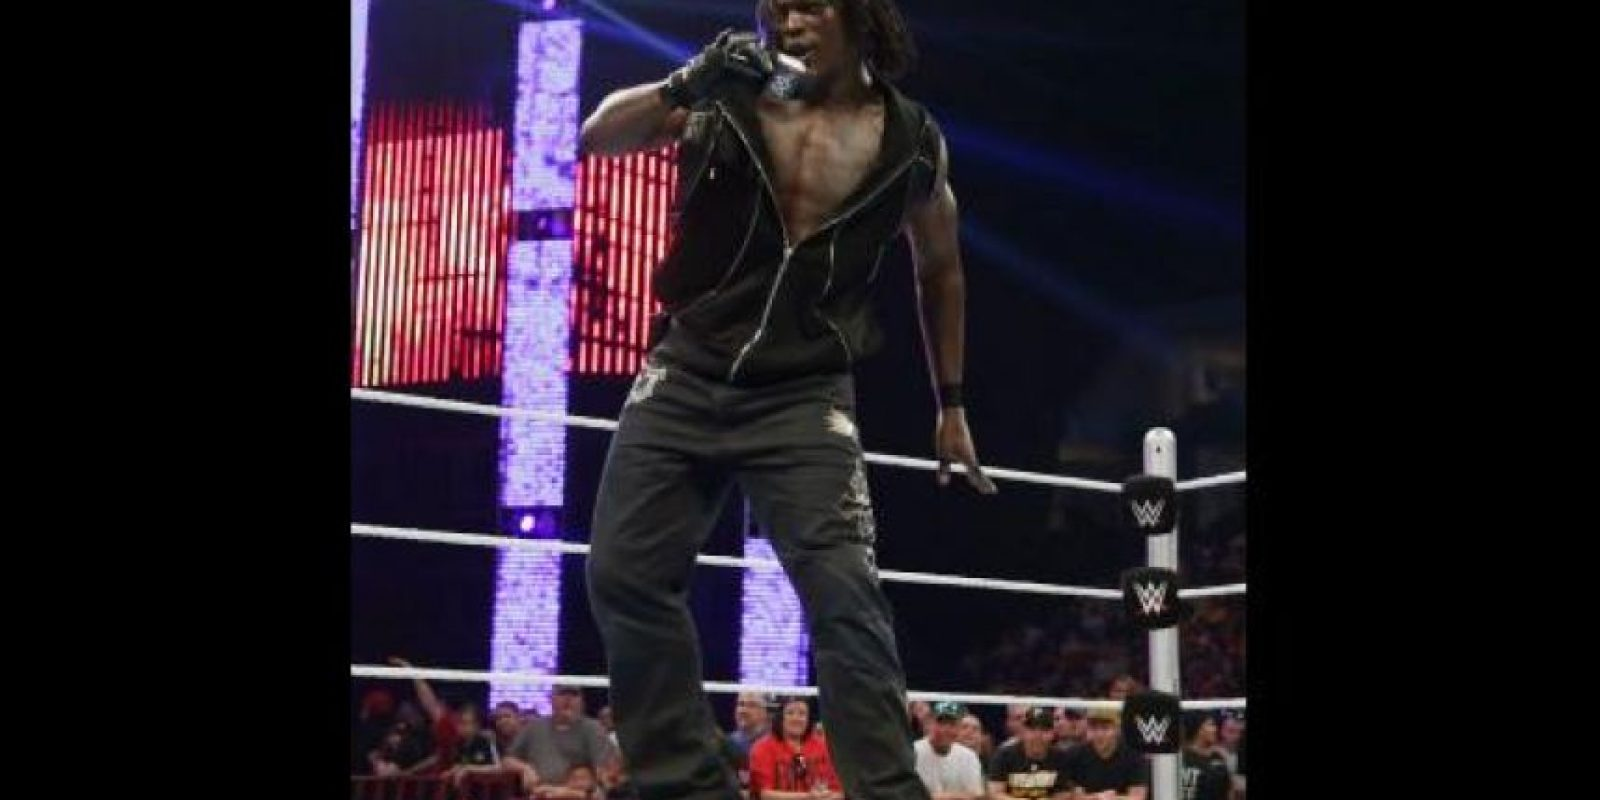 Su nombre real es Ronald Aaron Killings Foto: WWE